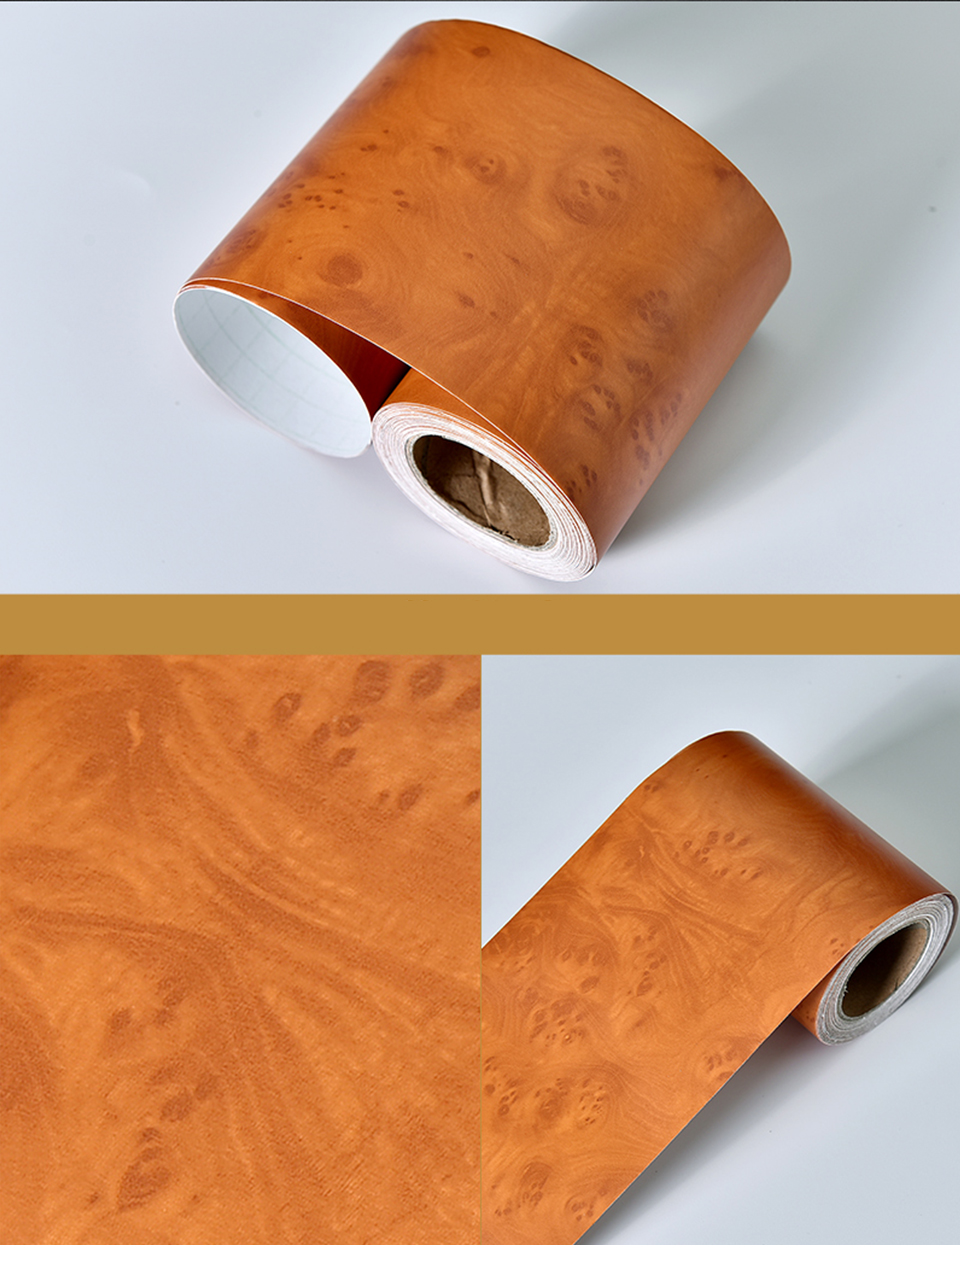 Wood Self Adhesive Window Decal Living Room Floor Border Skirting Contact Paper Waterproof Waist Line Wallpaper Home Improvement H196ac8abecb8420ea0d43da50225b3e5l